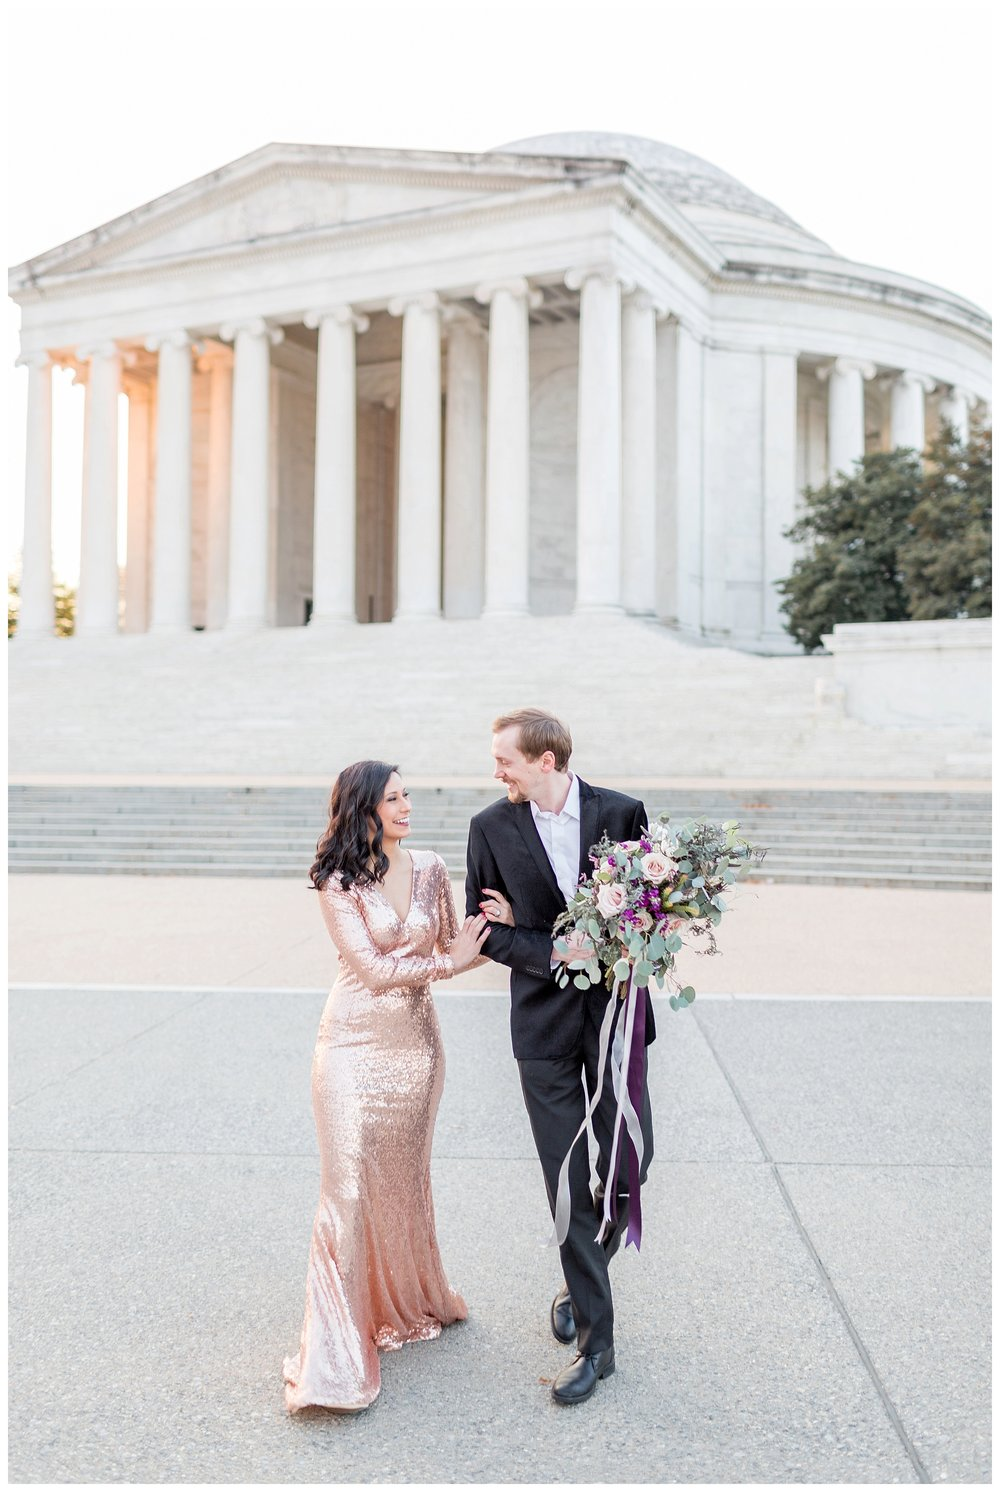 Washington DC Wedding Photographer_0003.jpg